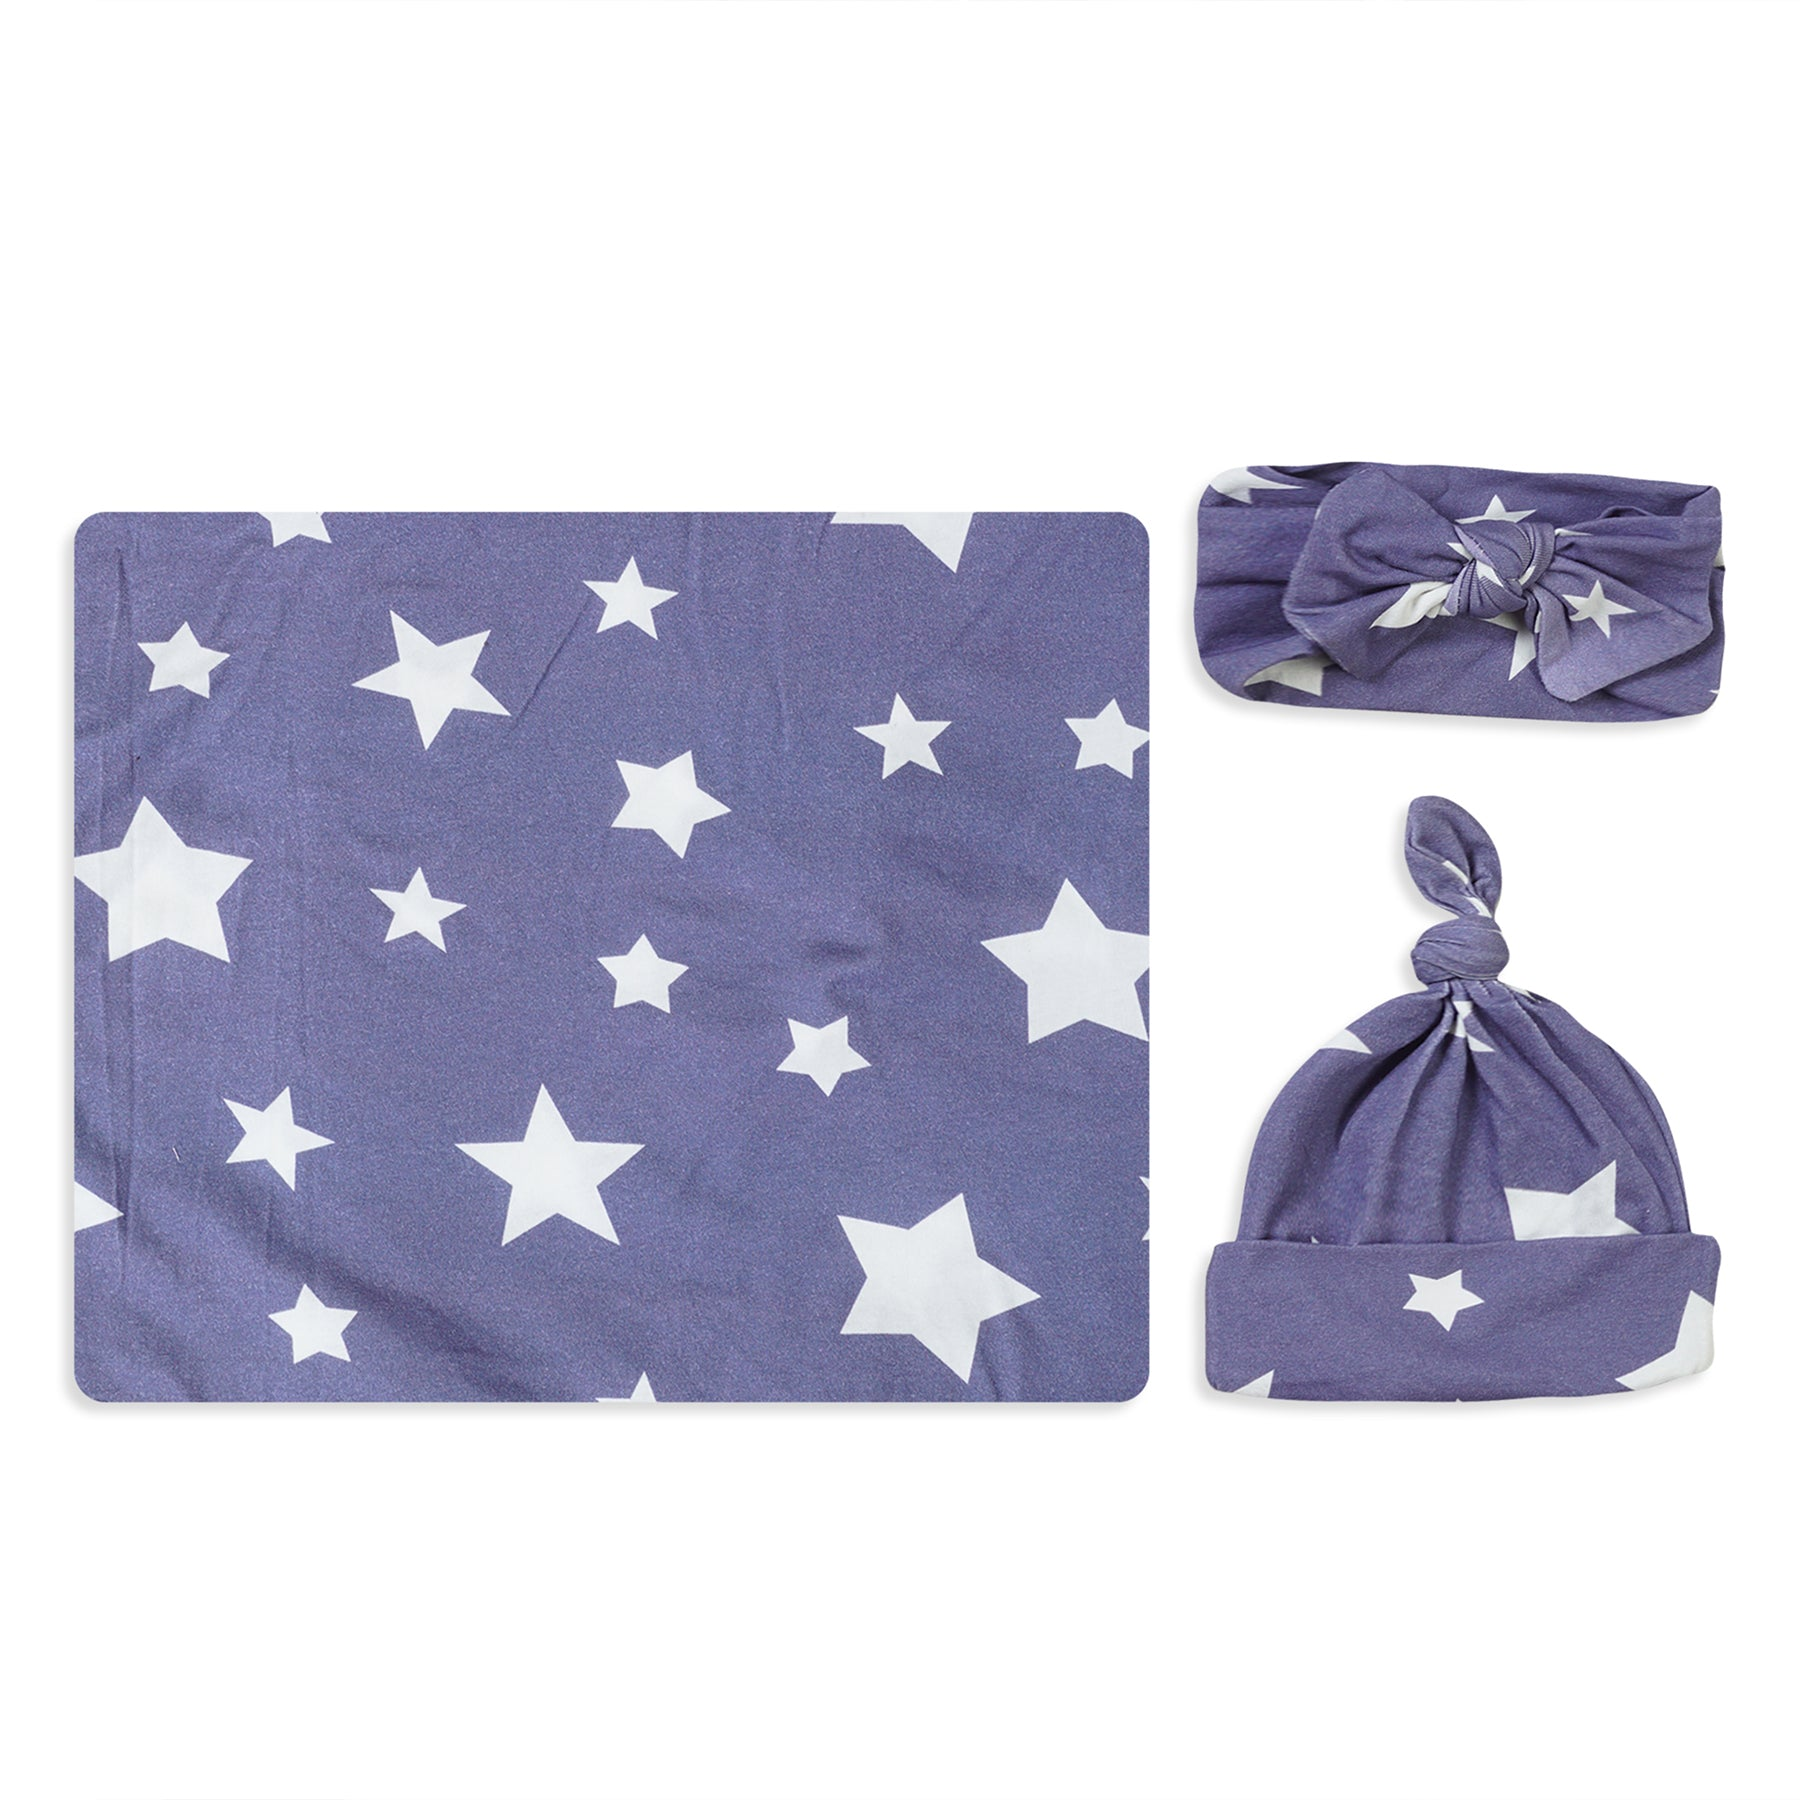 Blue Star Printed Swaddle Set For Newborn Baby Boy And Girl With Organic Maternity Robe | Comfy Mommy